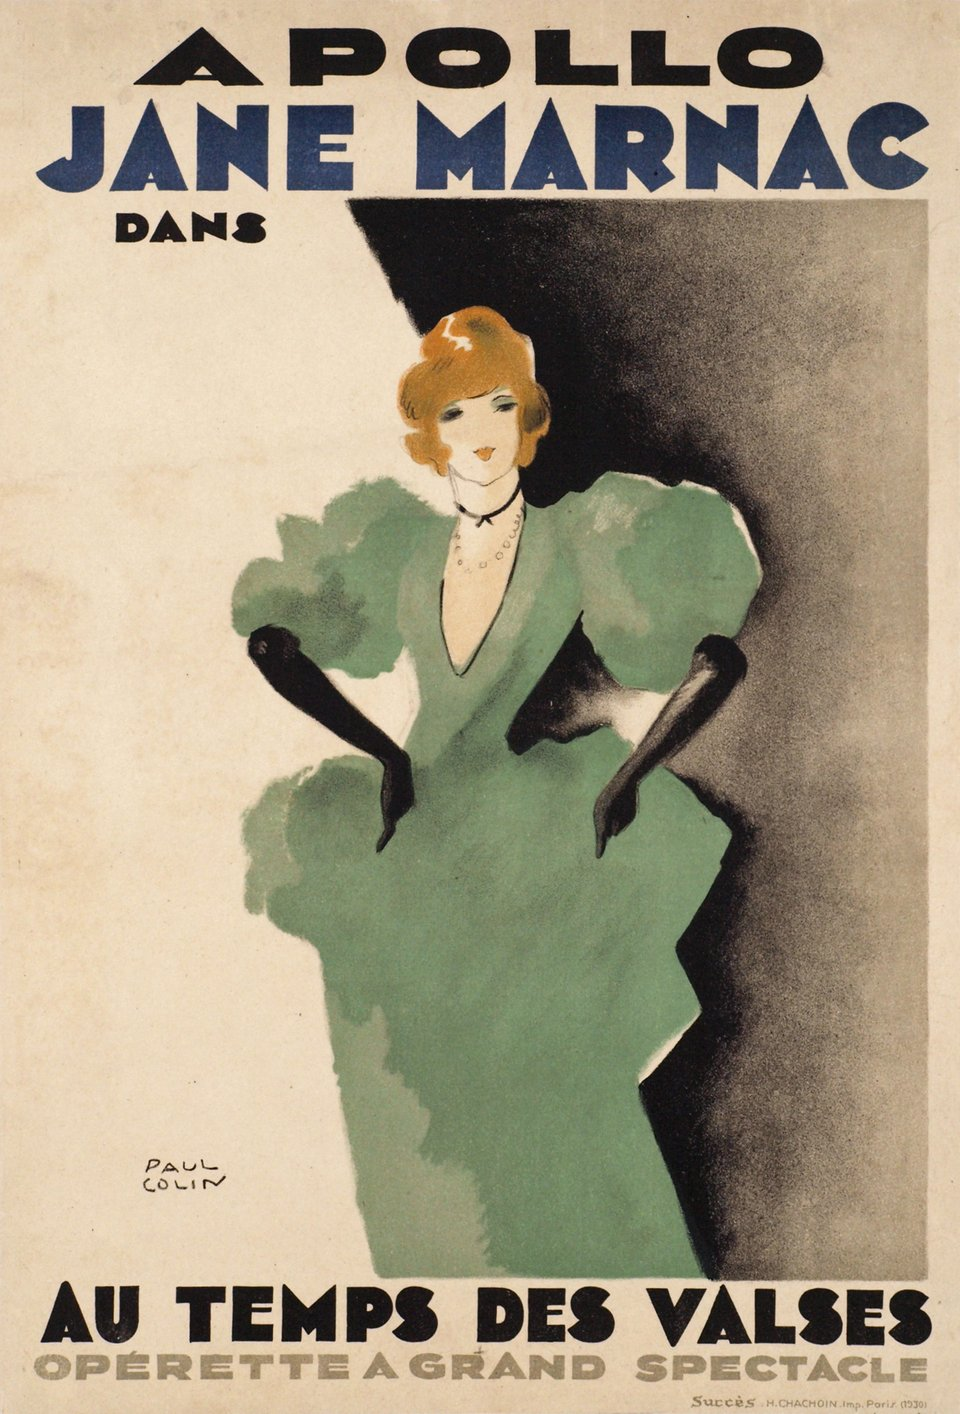 Apollo, Jane Marnac au temps des valses - Opérette à grand spectacle – Affiche ancienne – Paul COLIN – 1930